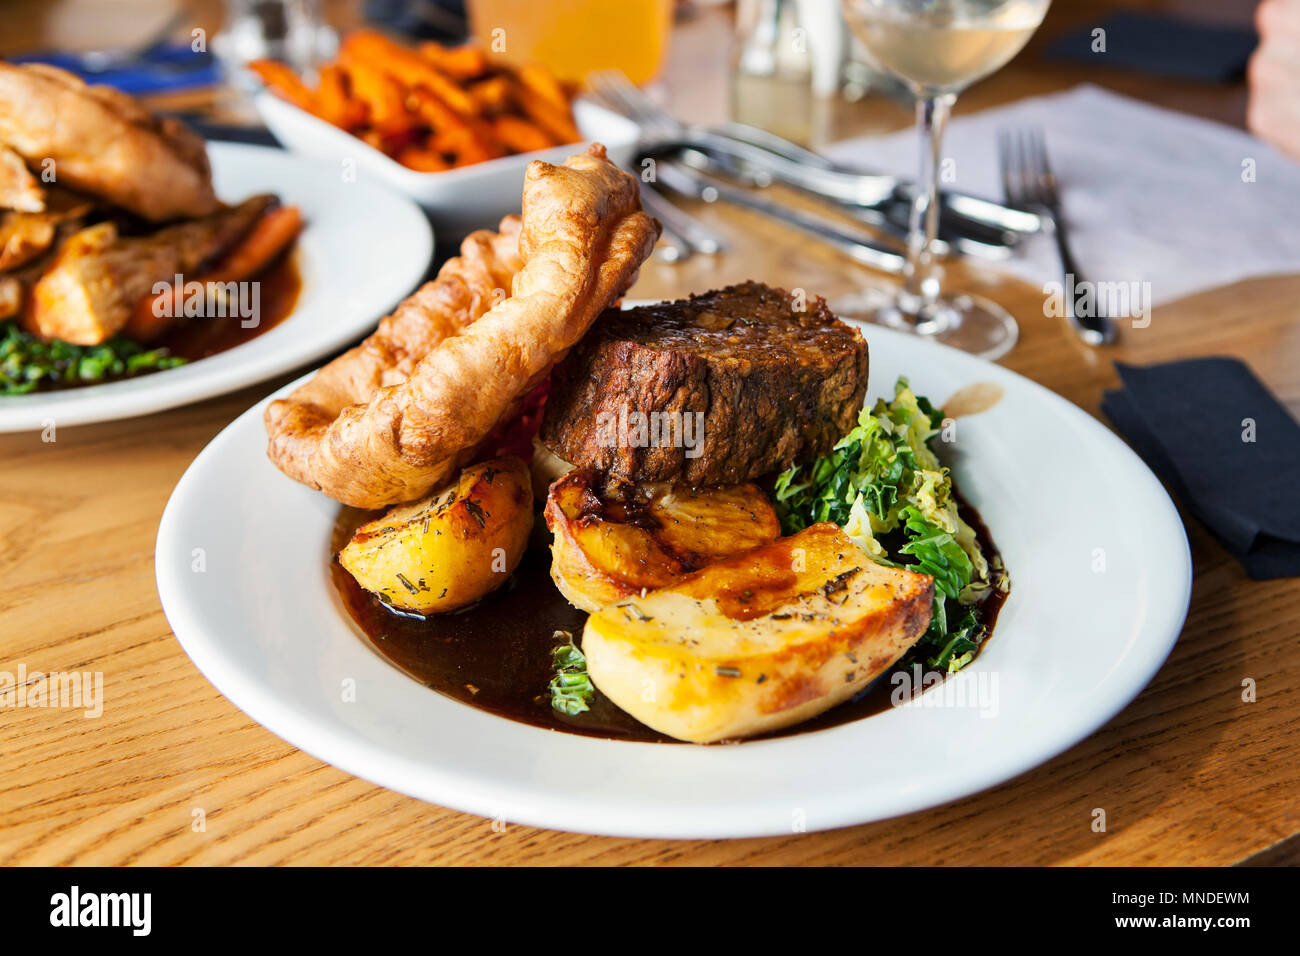 Vegetarian dinner with nut roast, potatoes, yorkshire pudding and gravy - Stock Image